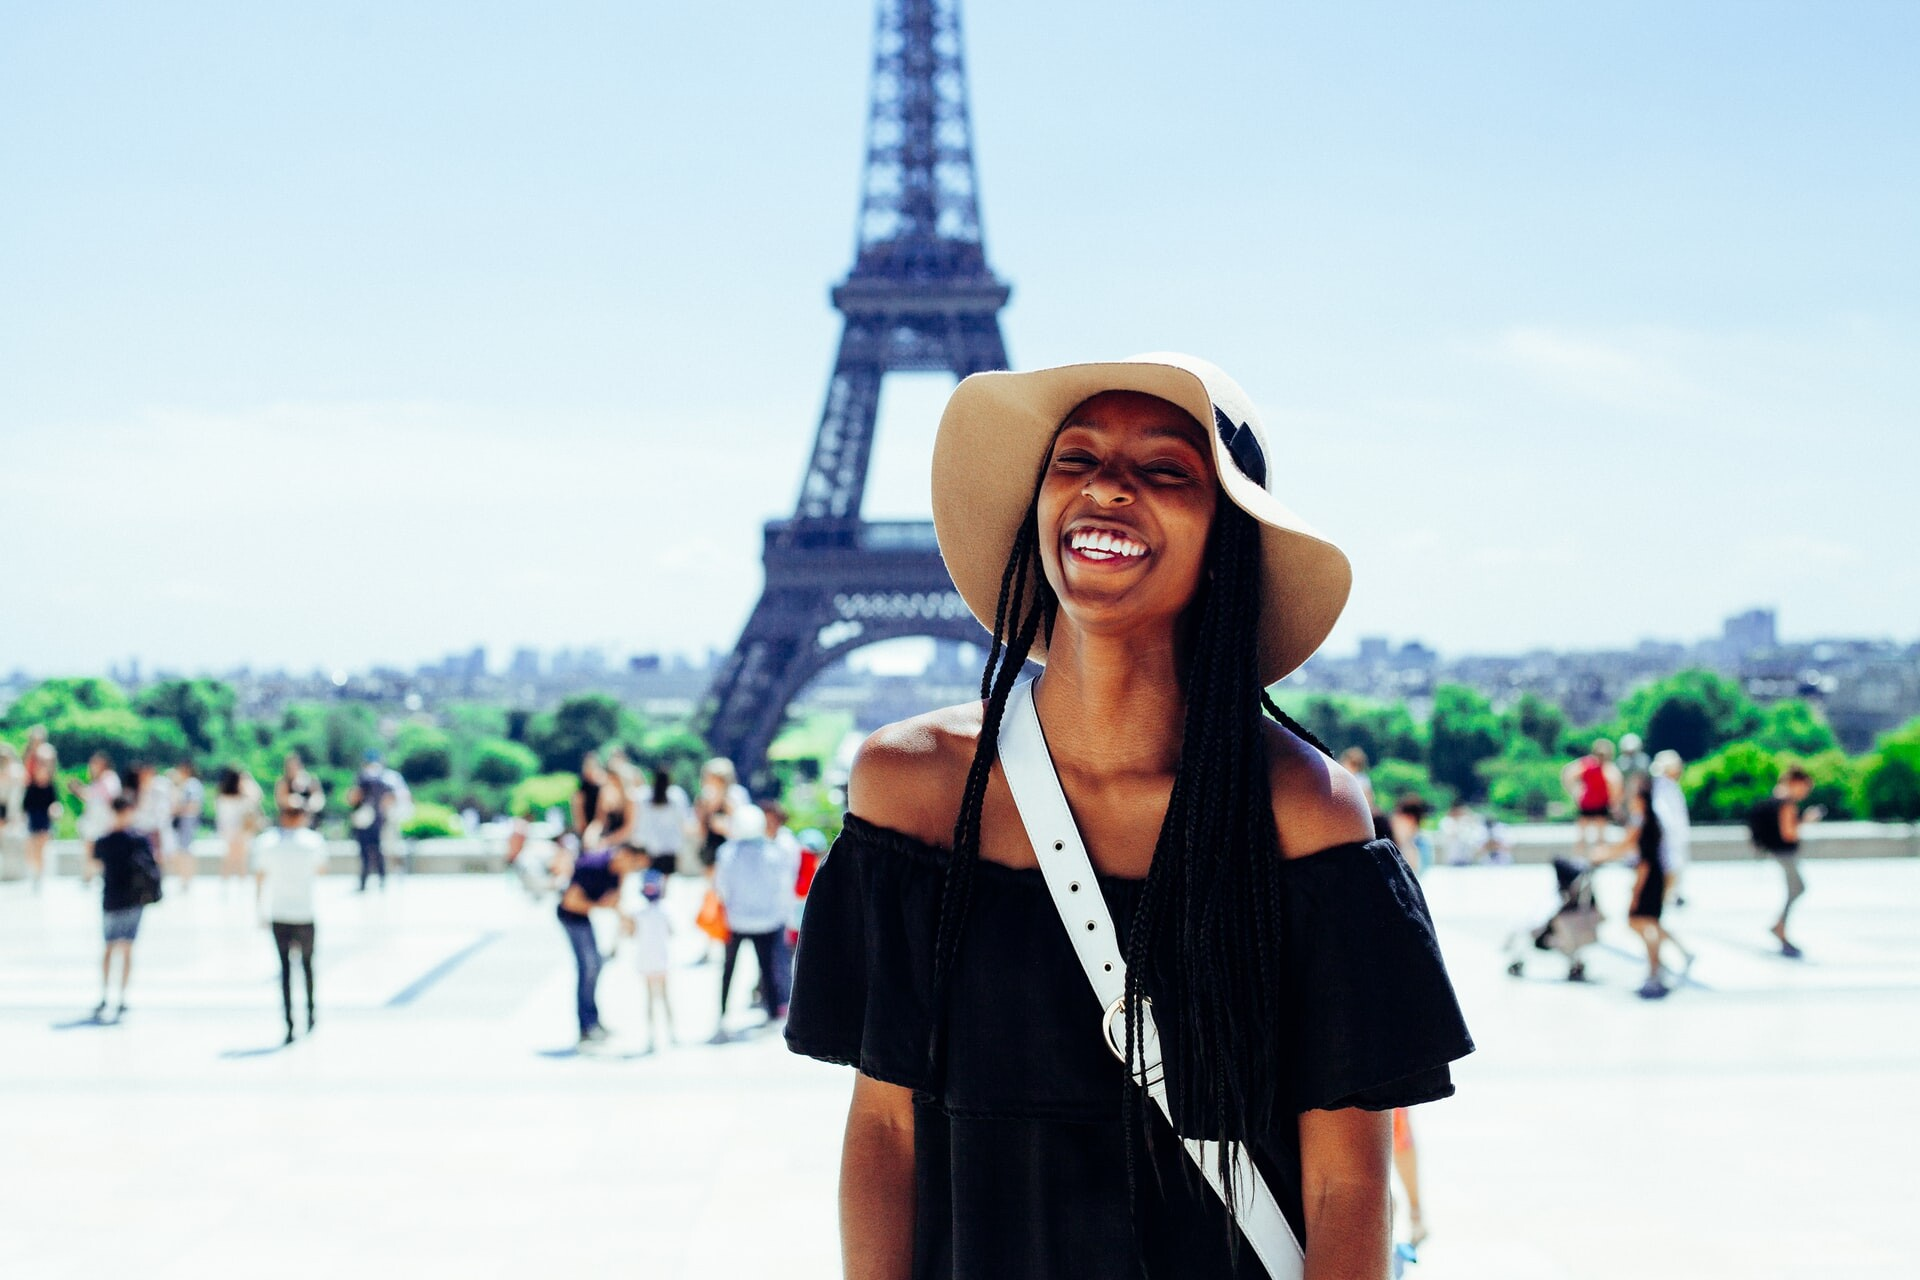 Woman smiling next to the Eiffel Tower